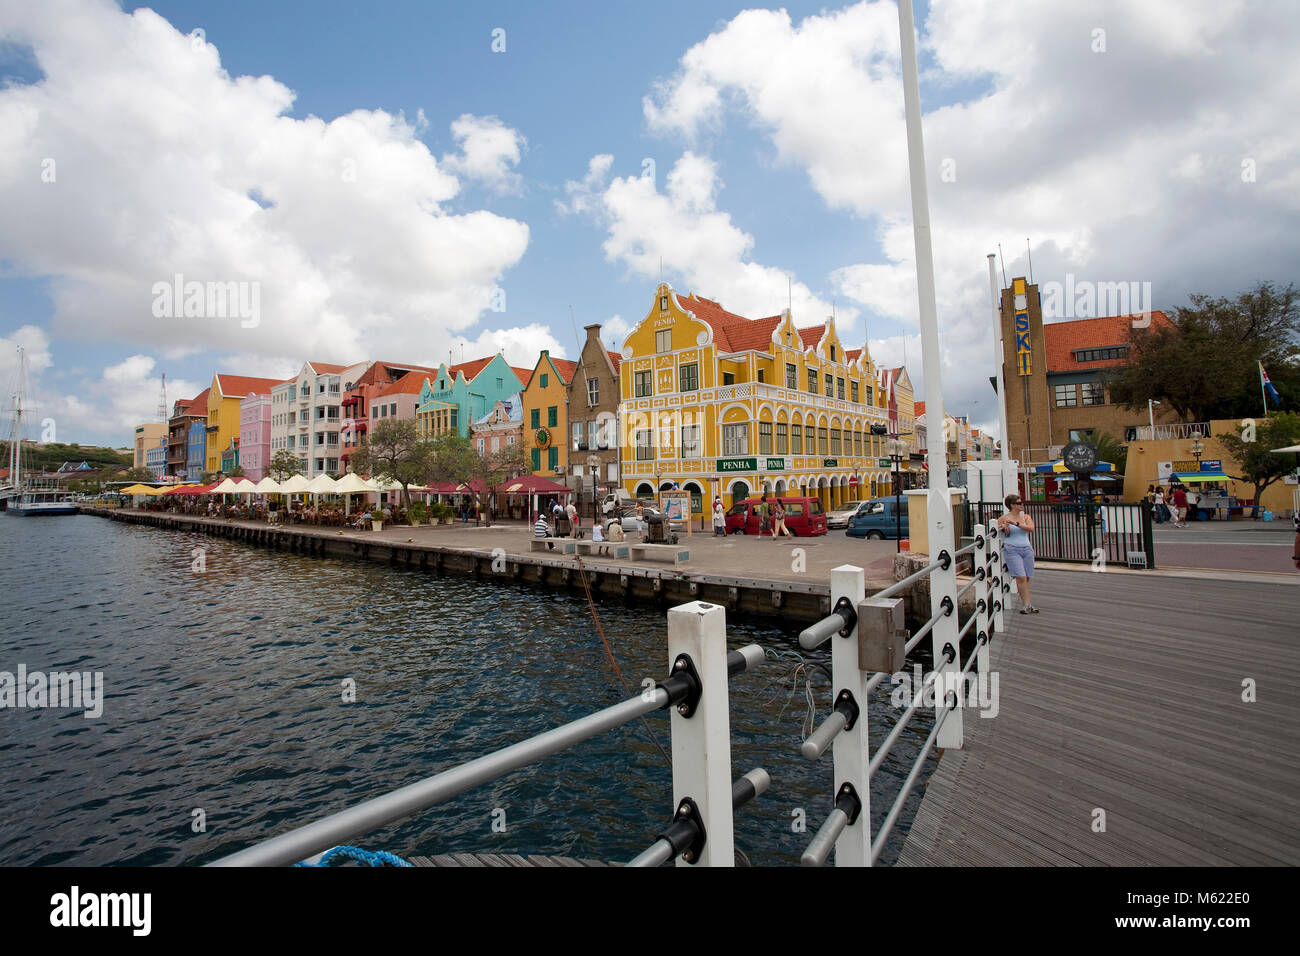 View from Queen Emma bridge on trade arcade, historical colonial buildings at Pundsa district, Willemstad, Curacao, - Stock Image